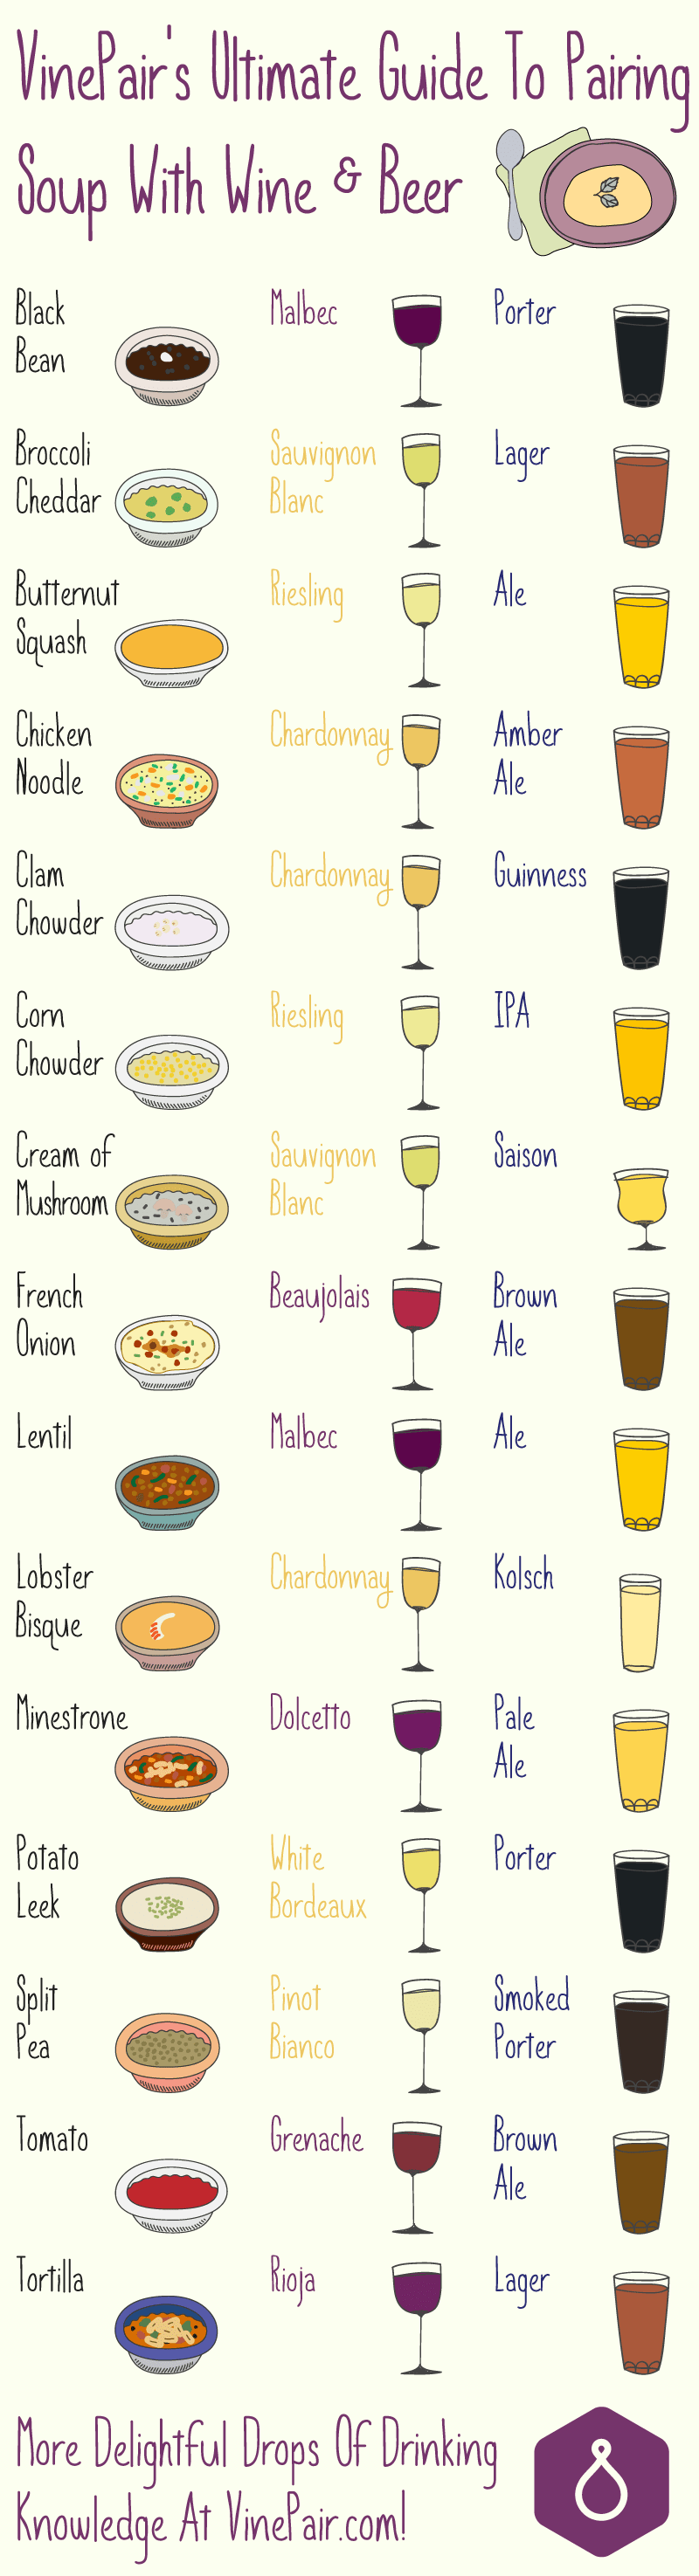 soup beer wine pairing guide infographic